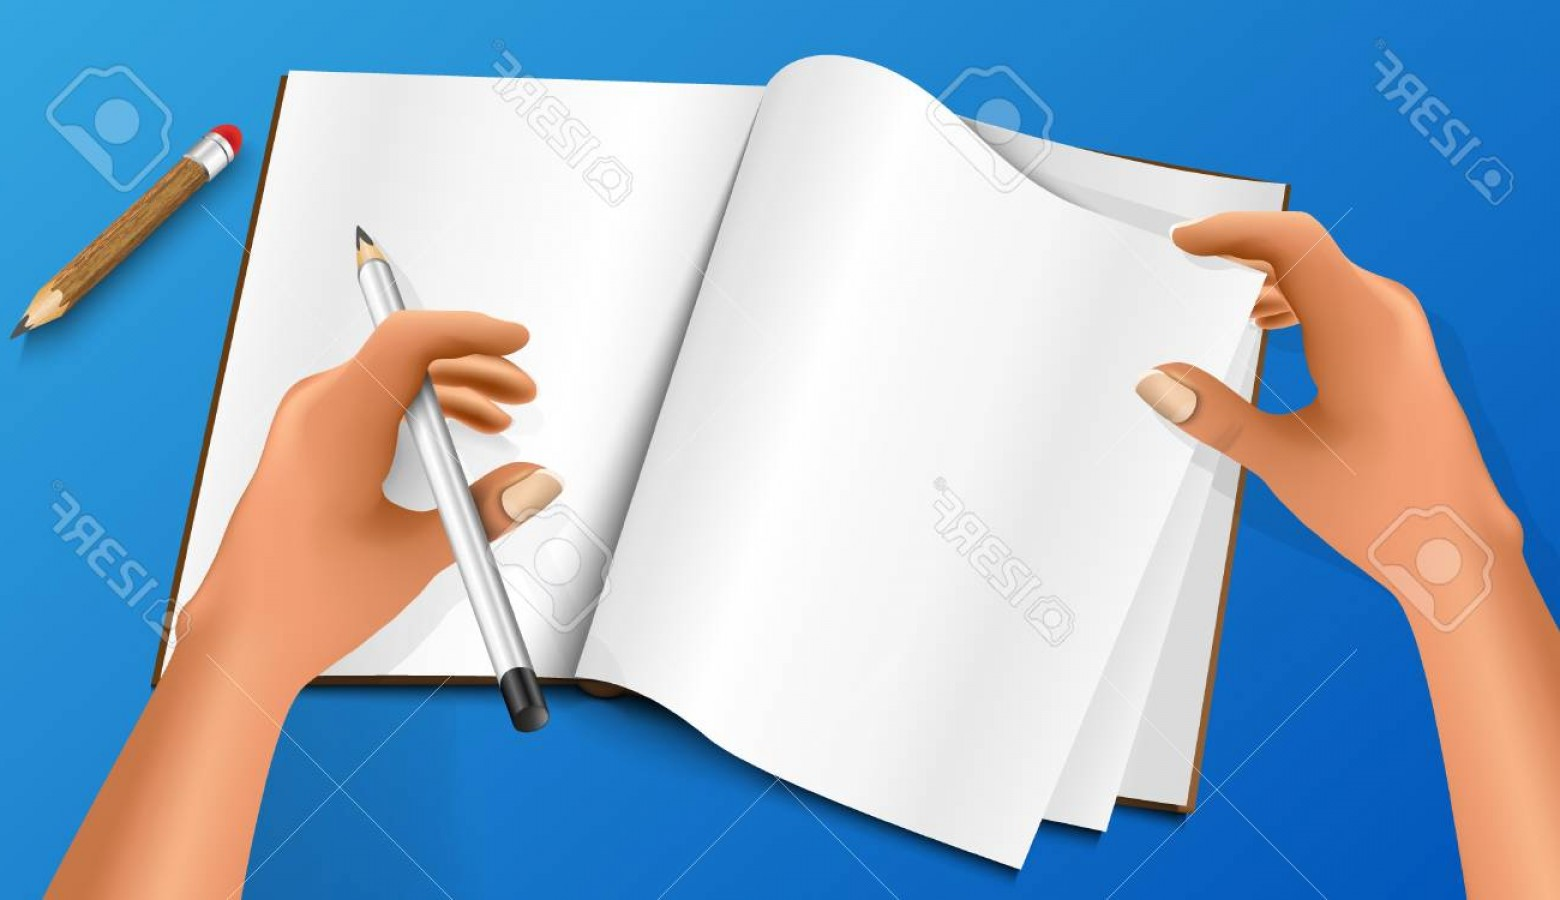 Notepad Writing Hand Vector: Photohand Writing With A Pencil And Notepad